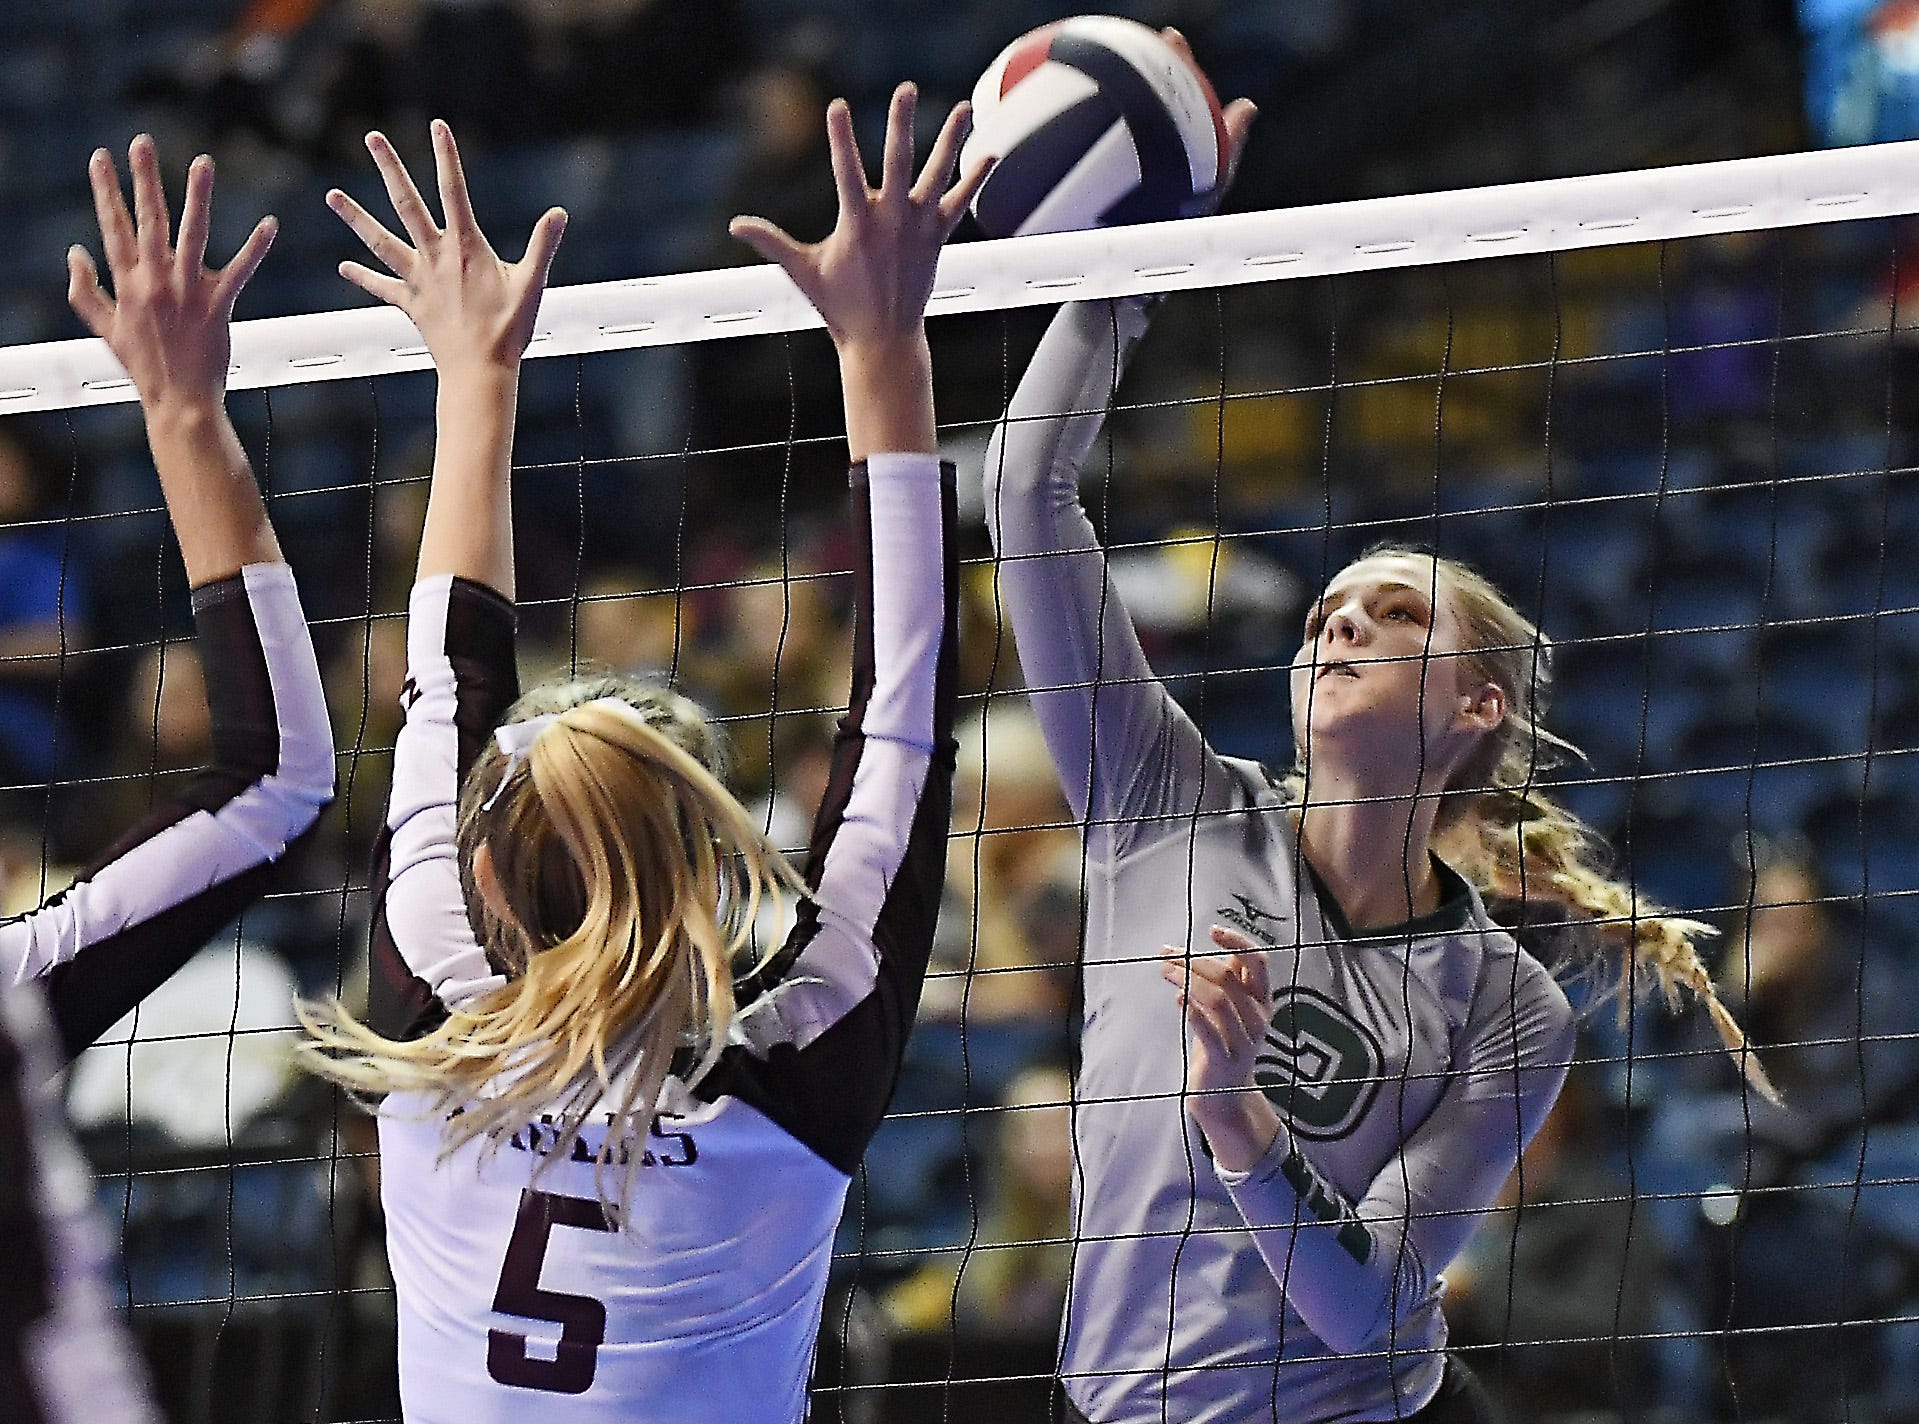 Tri-Cities' Chloe Derks on the attack in a match with Manhattan Christian at the All-Class State Volleyball Tournament at the Brick Breeden Fieldhouse in Bozeman Friday.